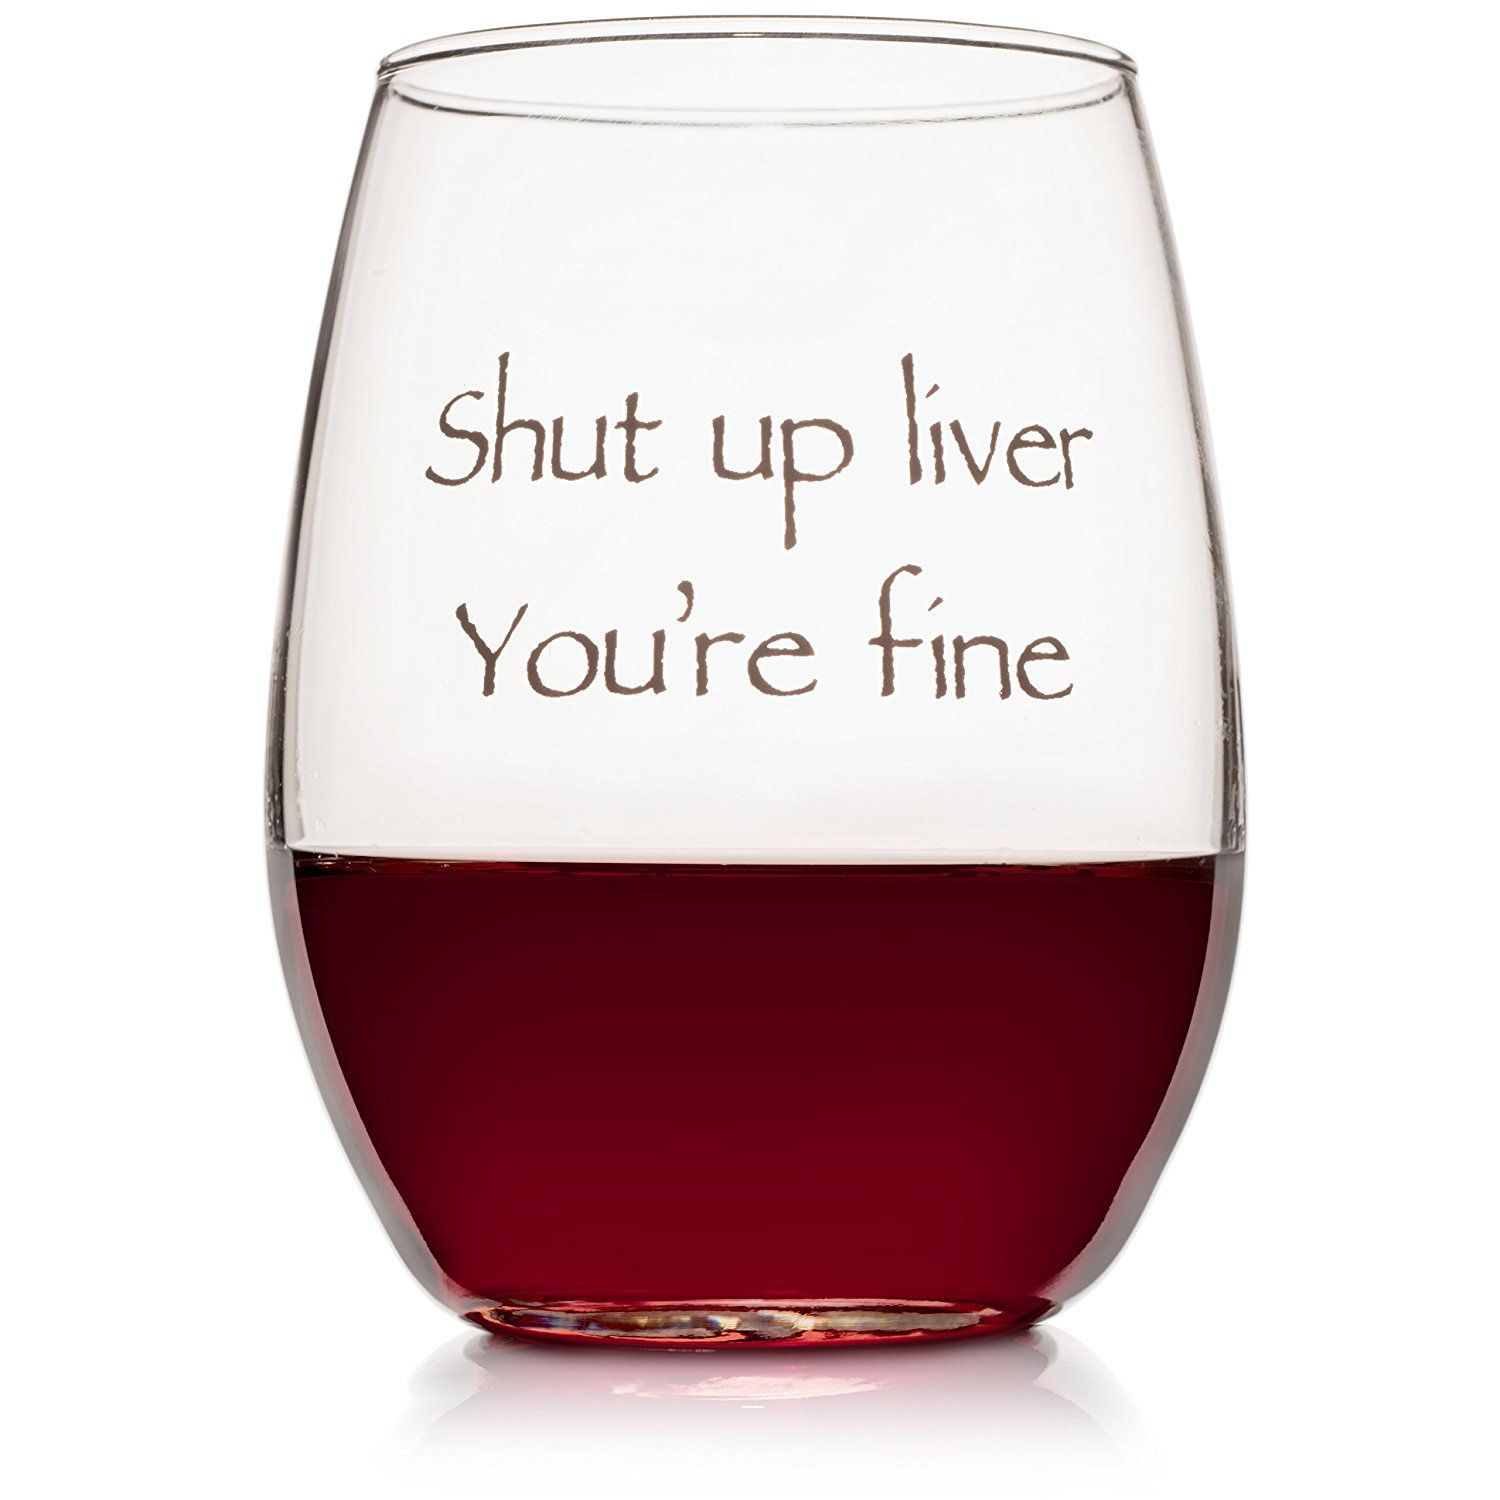 My Sister Has An Awesome Sister Sister Gift Awesome Sister Birthday Gift For Sister Humorous Gift Sister Gag Gift Funny Wine Glass Funny Wine Glass Birthday Gifts For Sister Wine Gifts